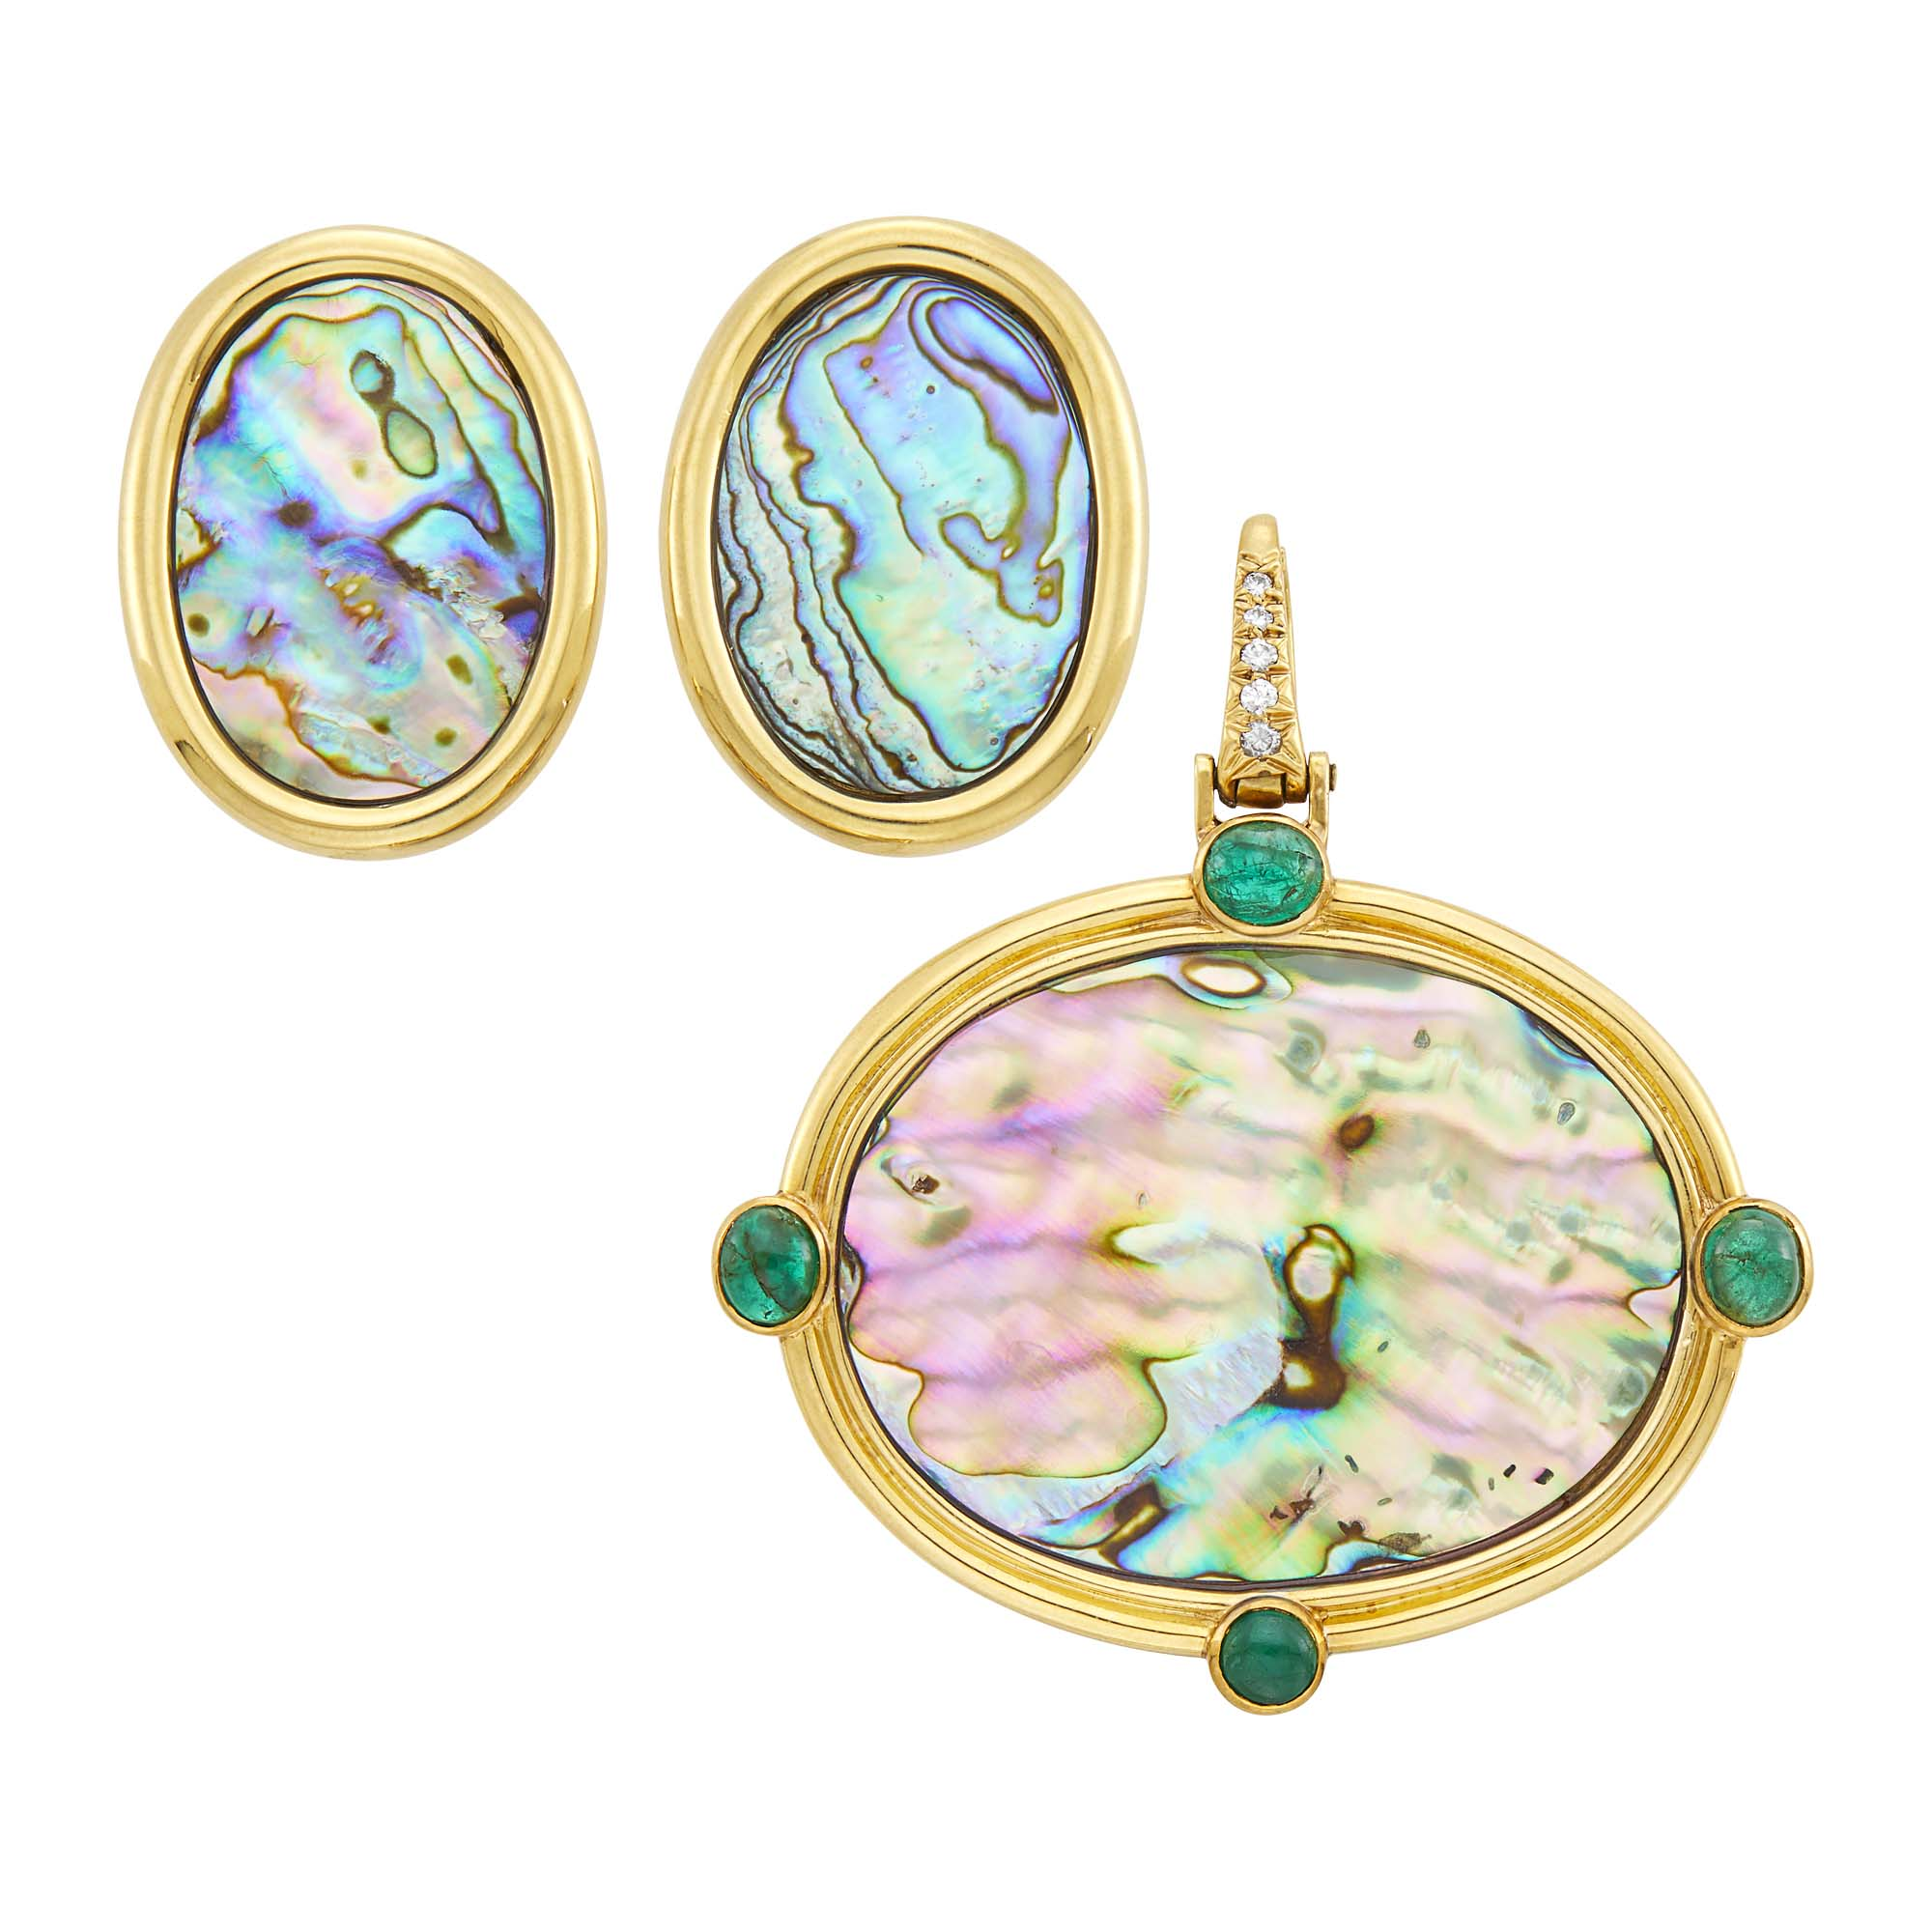 Lot image - Andrew Clunn Pair of Gold and Abalone Shell Earclips and Gold, Abalone Shell, Cabochon Emerald and Diamond Enhancer